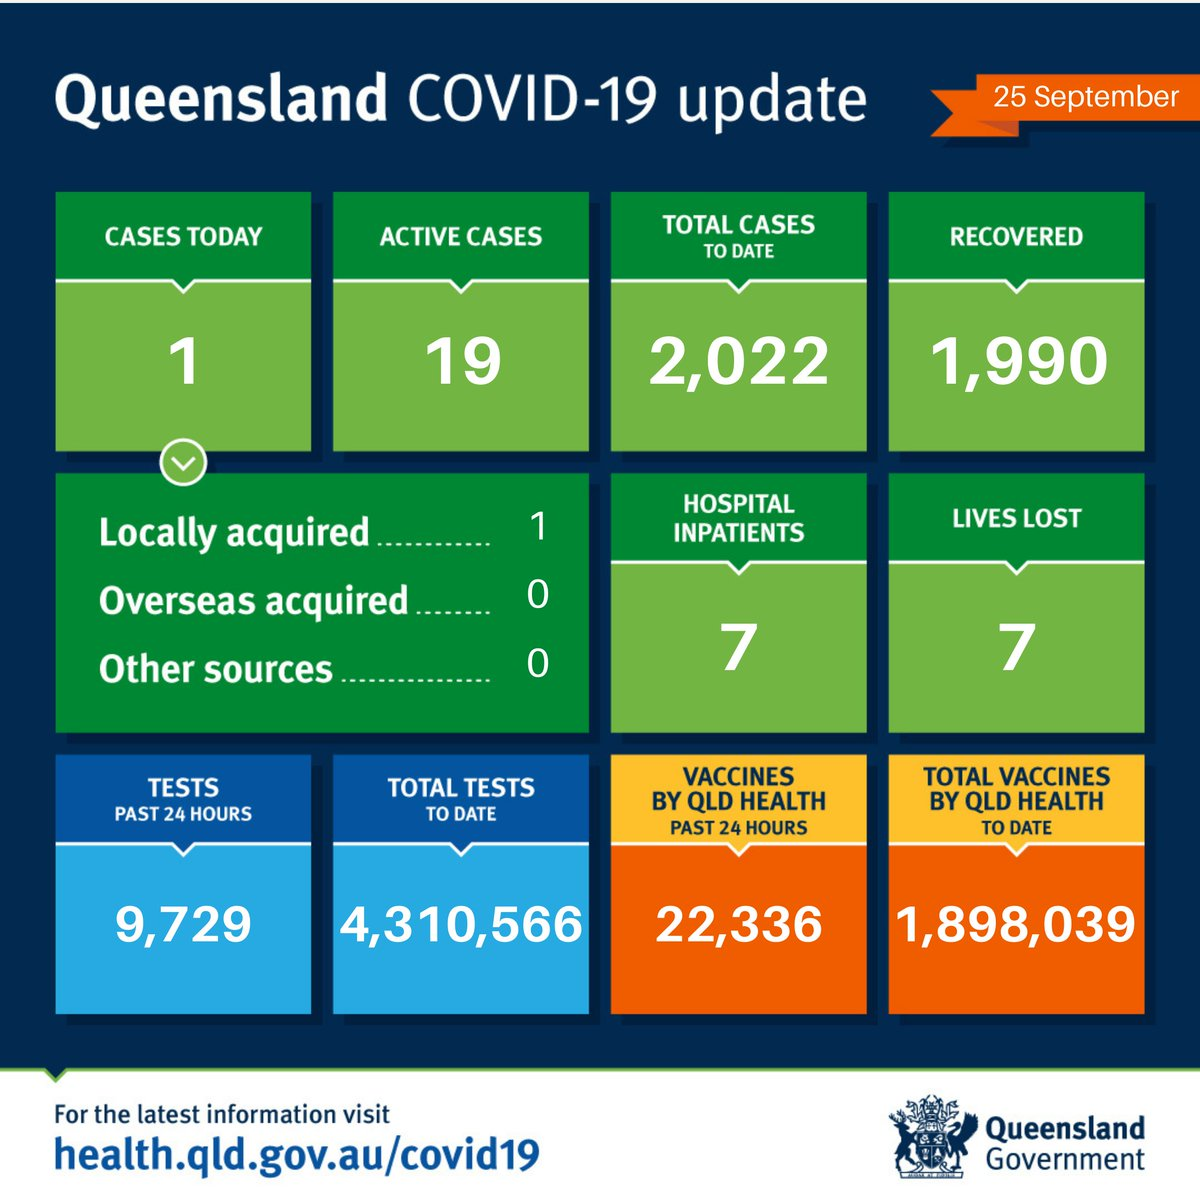 Queensland #COVID19 update 25/09/21 Today we have recorded 1 new case of COVID-19. The case was locally acquired, connected to the Sunnybank cluster and detected in home quarantine. Detailed information can be found here: health.qld.gov.au/covid-data